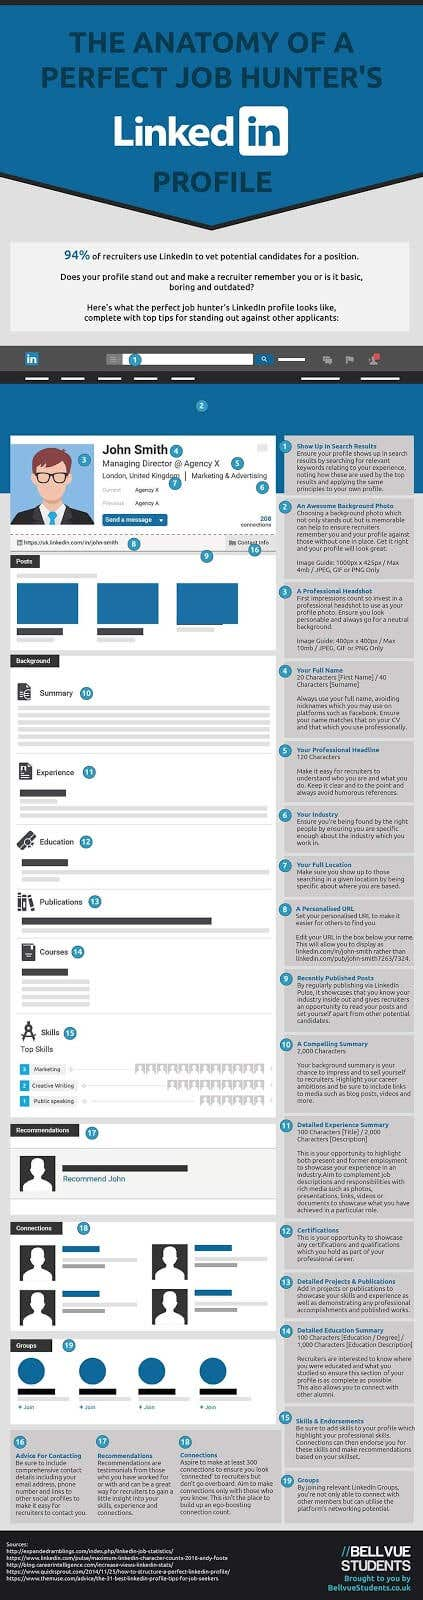 linkedin profile infographic